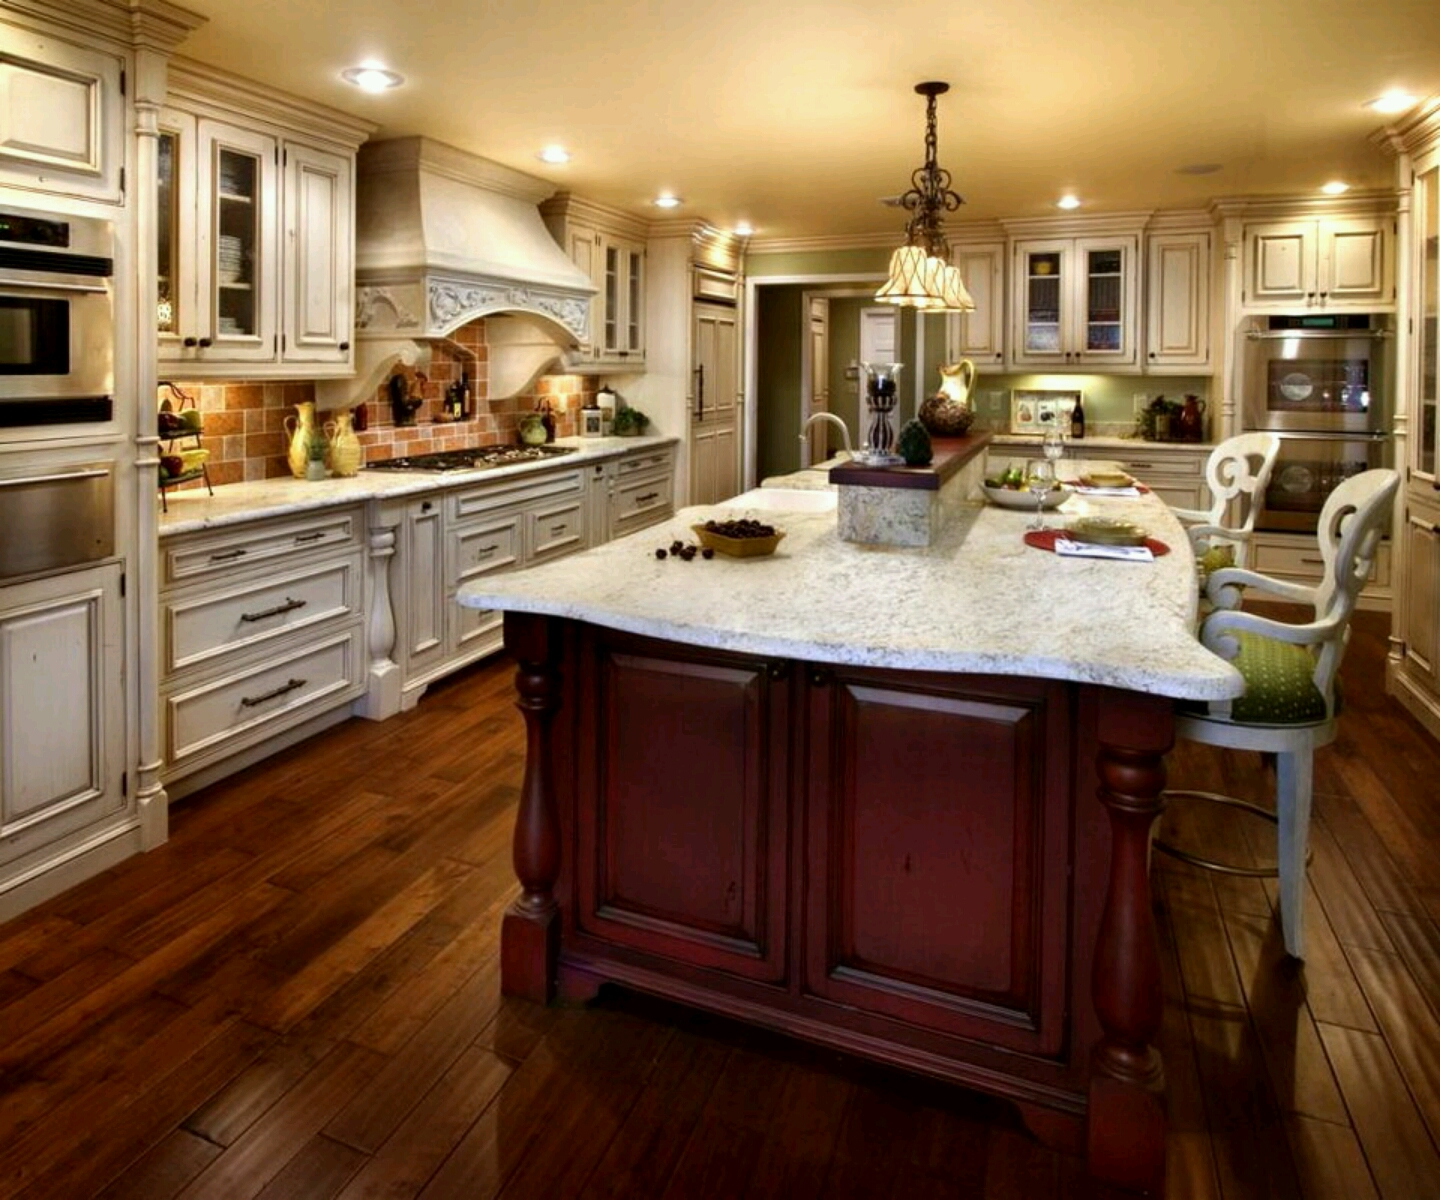 Luxury kitchen modern kitchen cabinets designs furniture gallery Wood kitchen design gallery